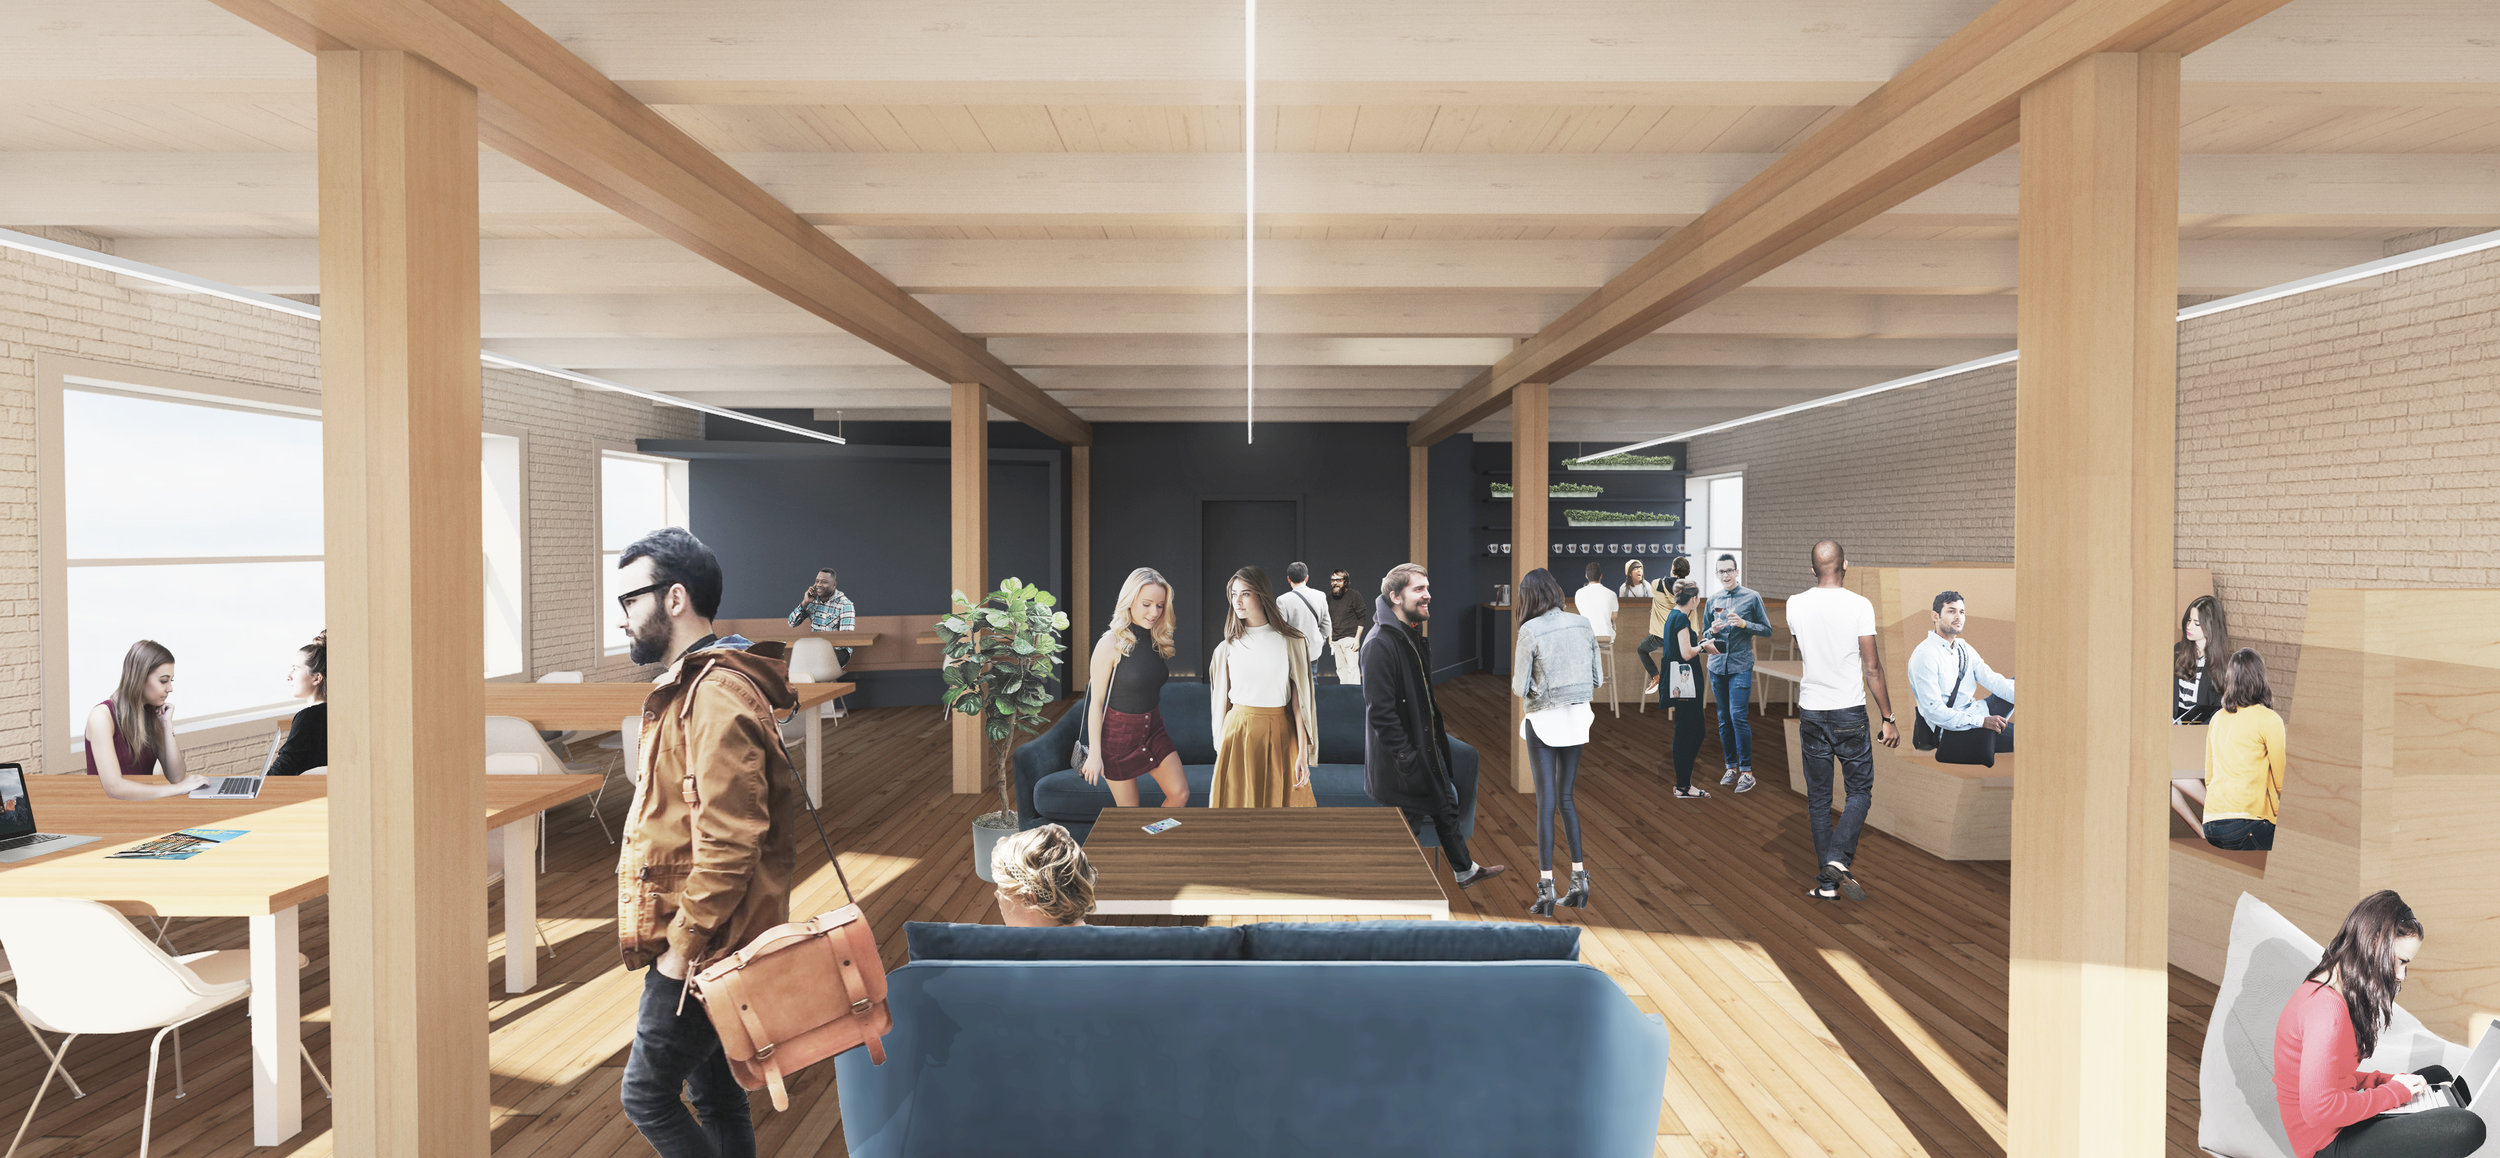 A schematic rendering envisioned a lively atmosphere.